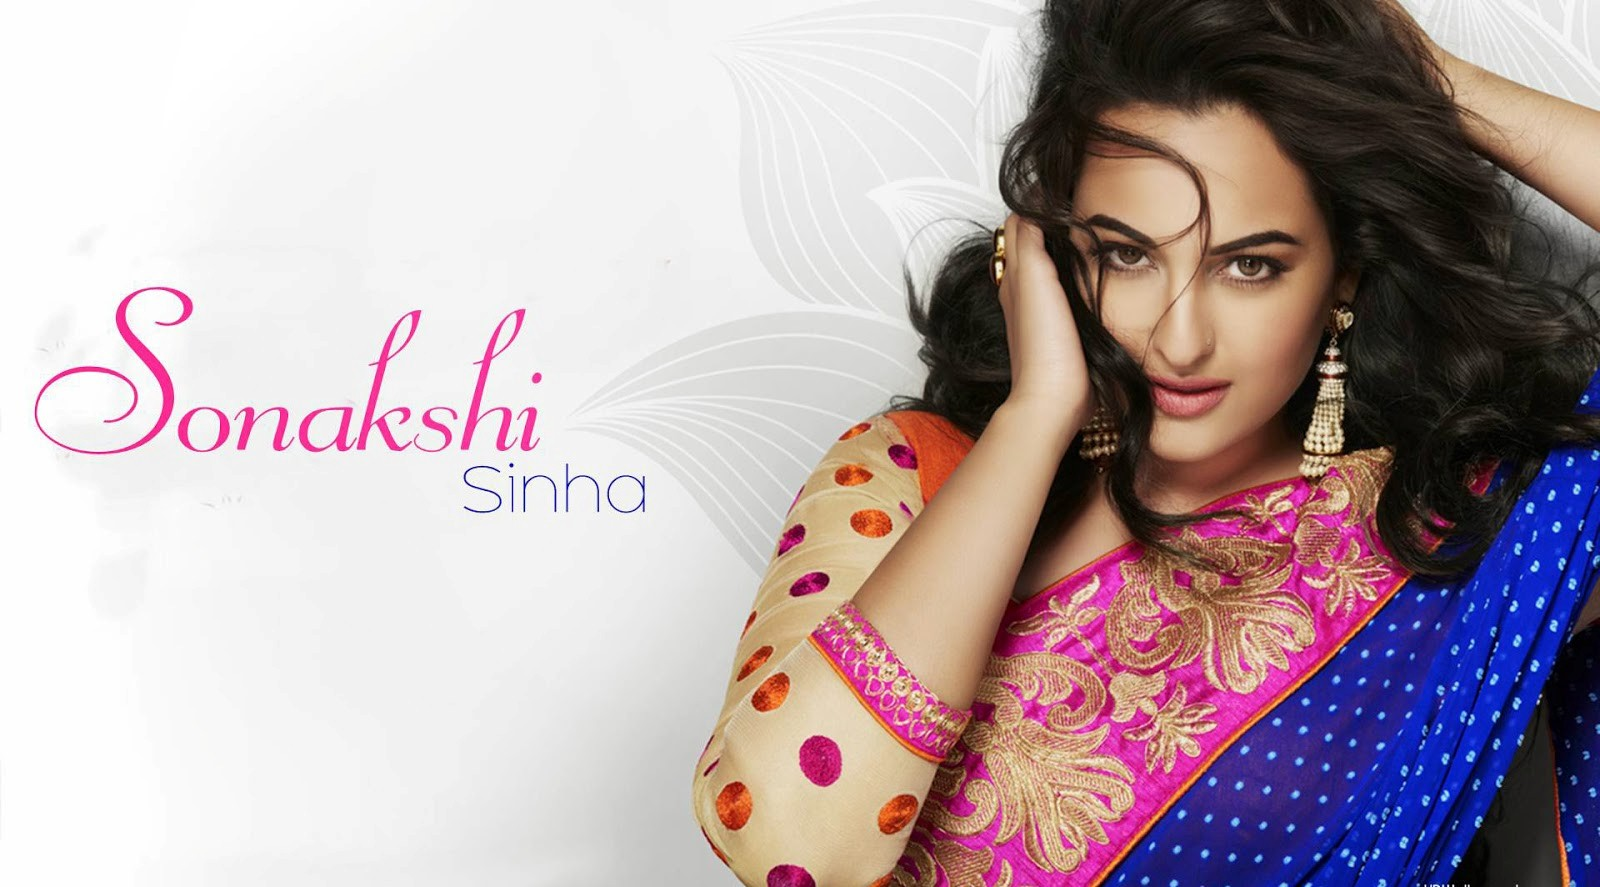 Hot And Sexy Look Of Sonakshi Sinha In Saree Hd Wallpapers - India Beautiful Actress Hd , HD Wallpaper & Backgrounds